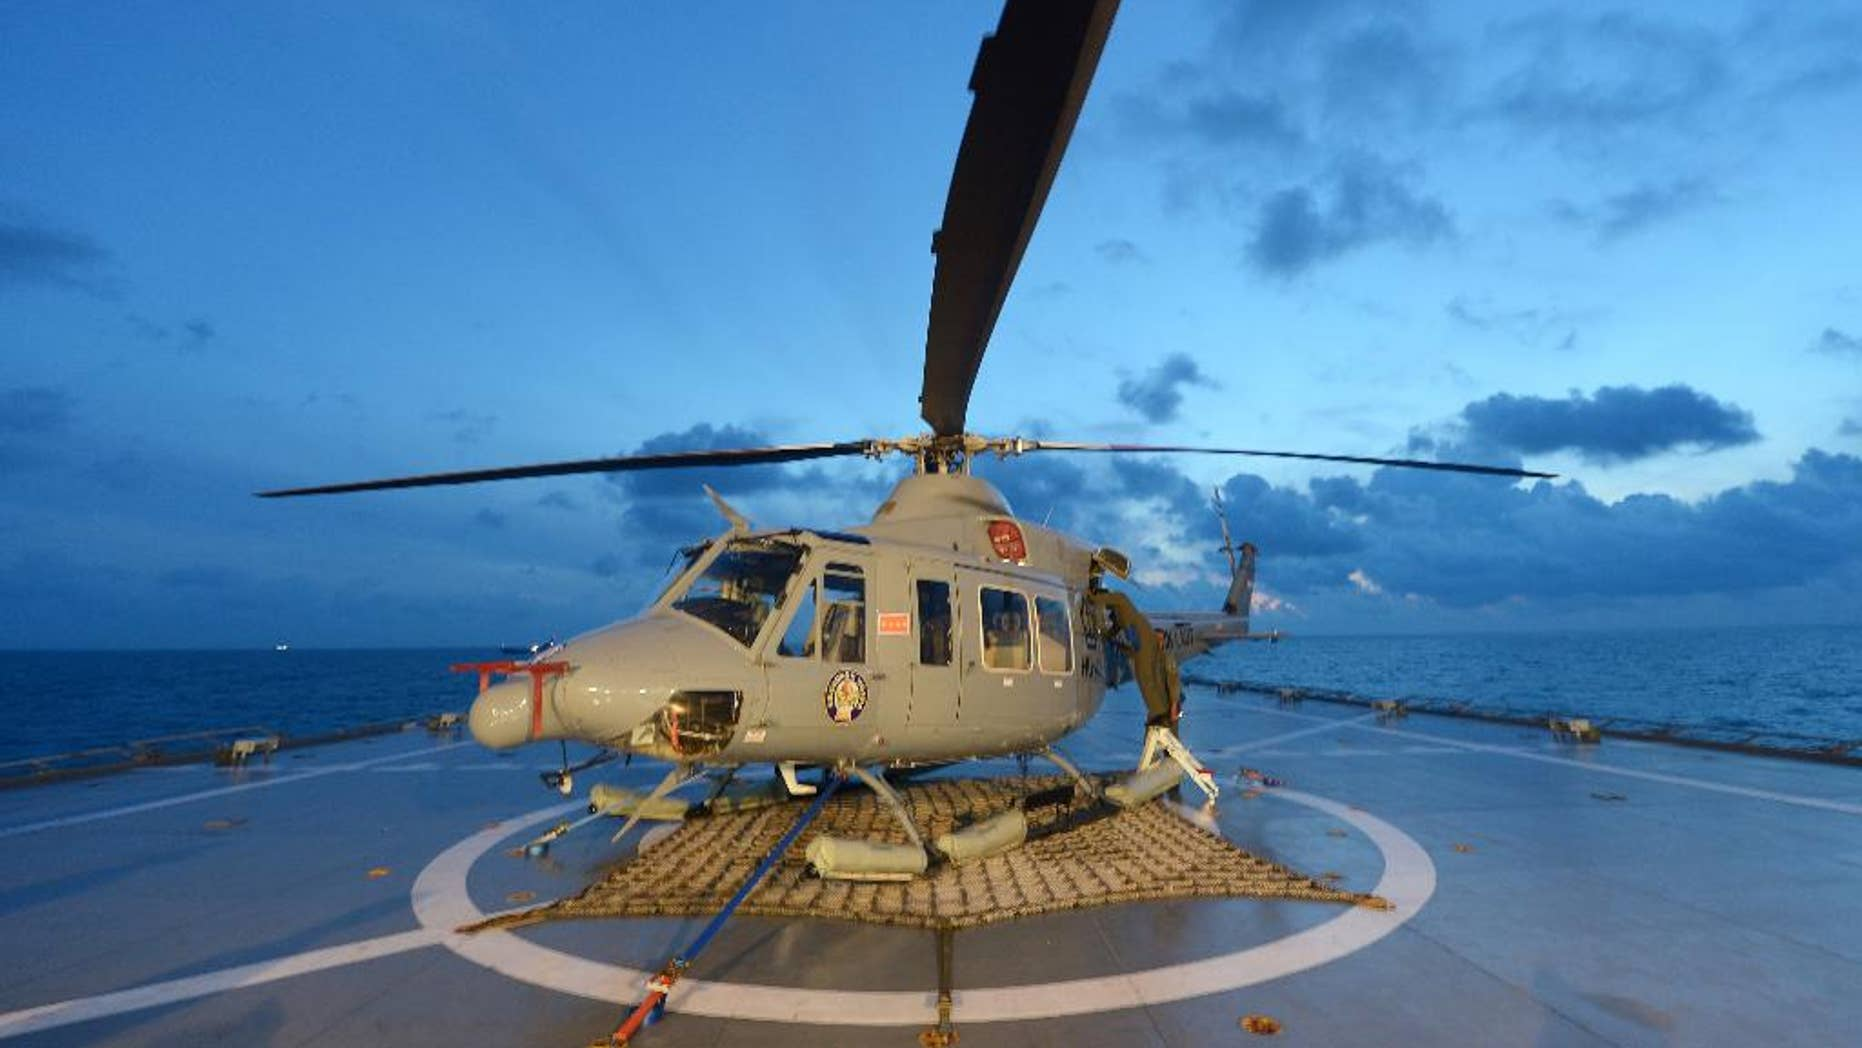 Indonesian navy personnel check a helicopter as they prepare operations to lift the tail of AirAsia Flight 8501 in Java sea, Indonesia Friday, Jan. 9, 2015. Days after sonar detected apparent wreckage, an unmanned underwater vehicle showed the plane's tail, lying upside down and partially buried in the ocean floor. (AP Photo/Adek Berry, Pool)